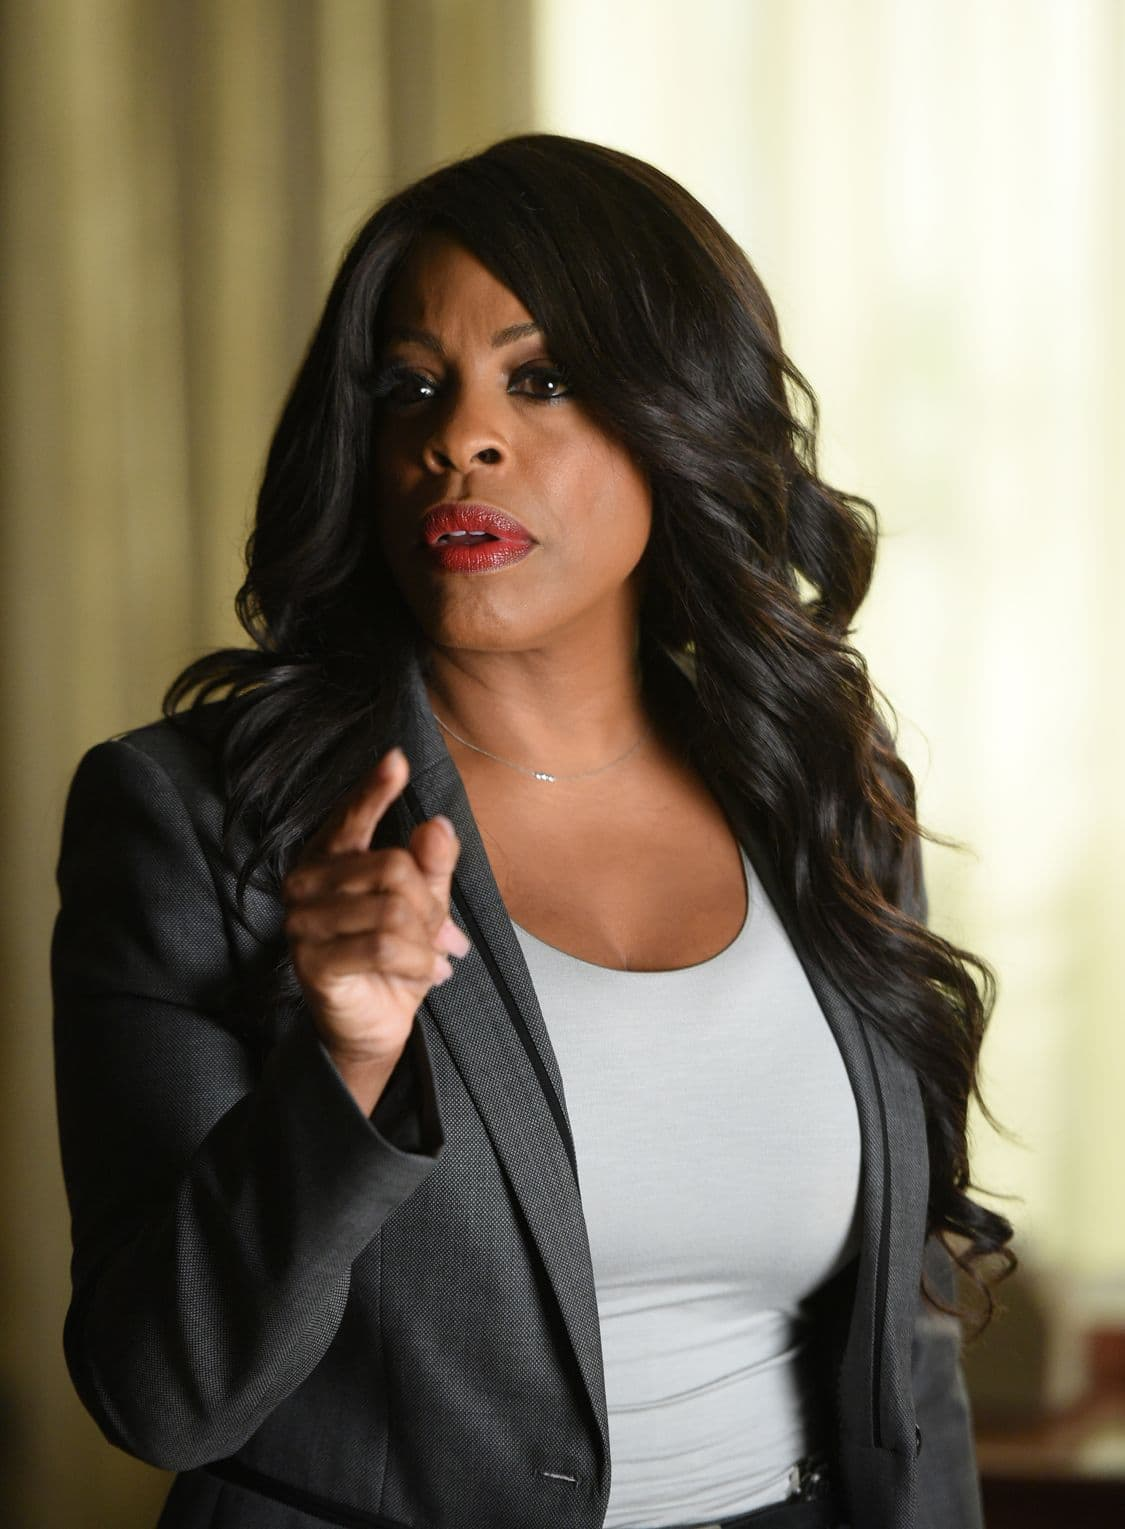 """SCREAM QUEENS: Niecy Nash in the all-new """"Handidates"""" episode of SCREAM QUEENS airing Tuesday, Oct. 11 (9:01-10:00 PM ET/PT) on FOX. Cr: Michael Becker / FOX. © 2016 FOX Broadcasting Co."""